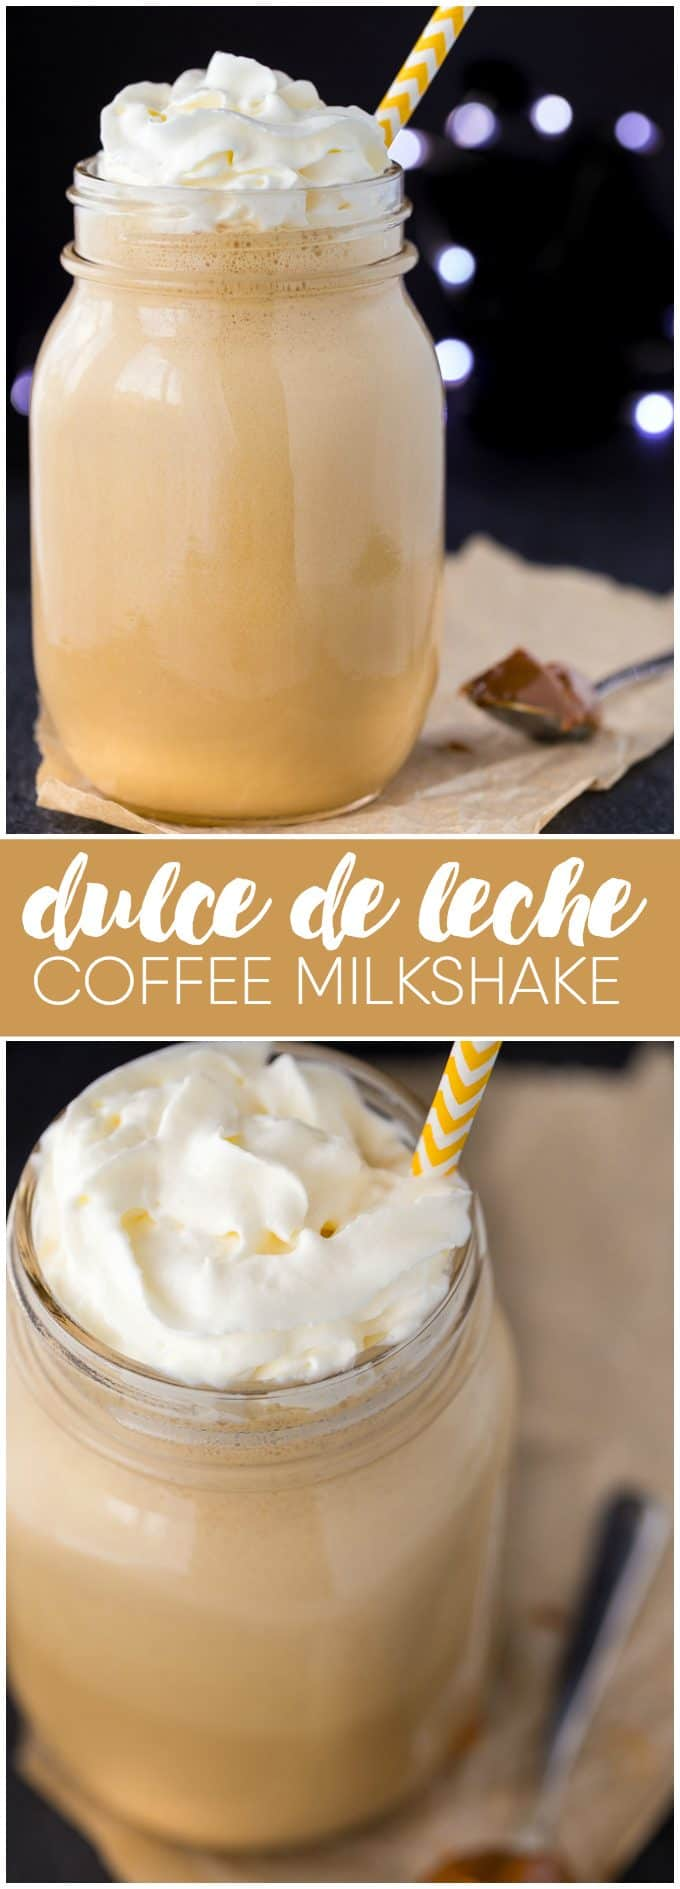 Dulce de Leche Coffee Milkshake - This mix of coffee and creamy milkshake with decadent Dulce de Leche flavour is a great way to cool down in the hot summer weather.